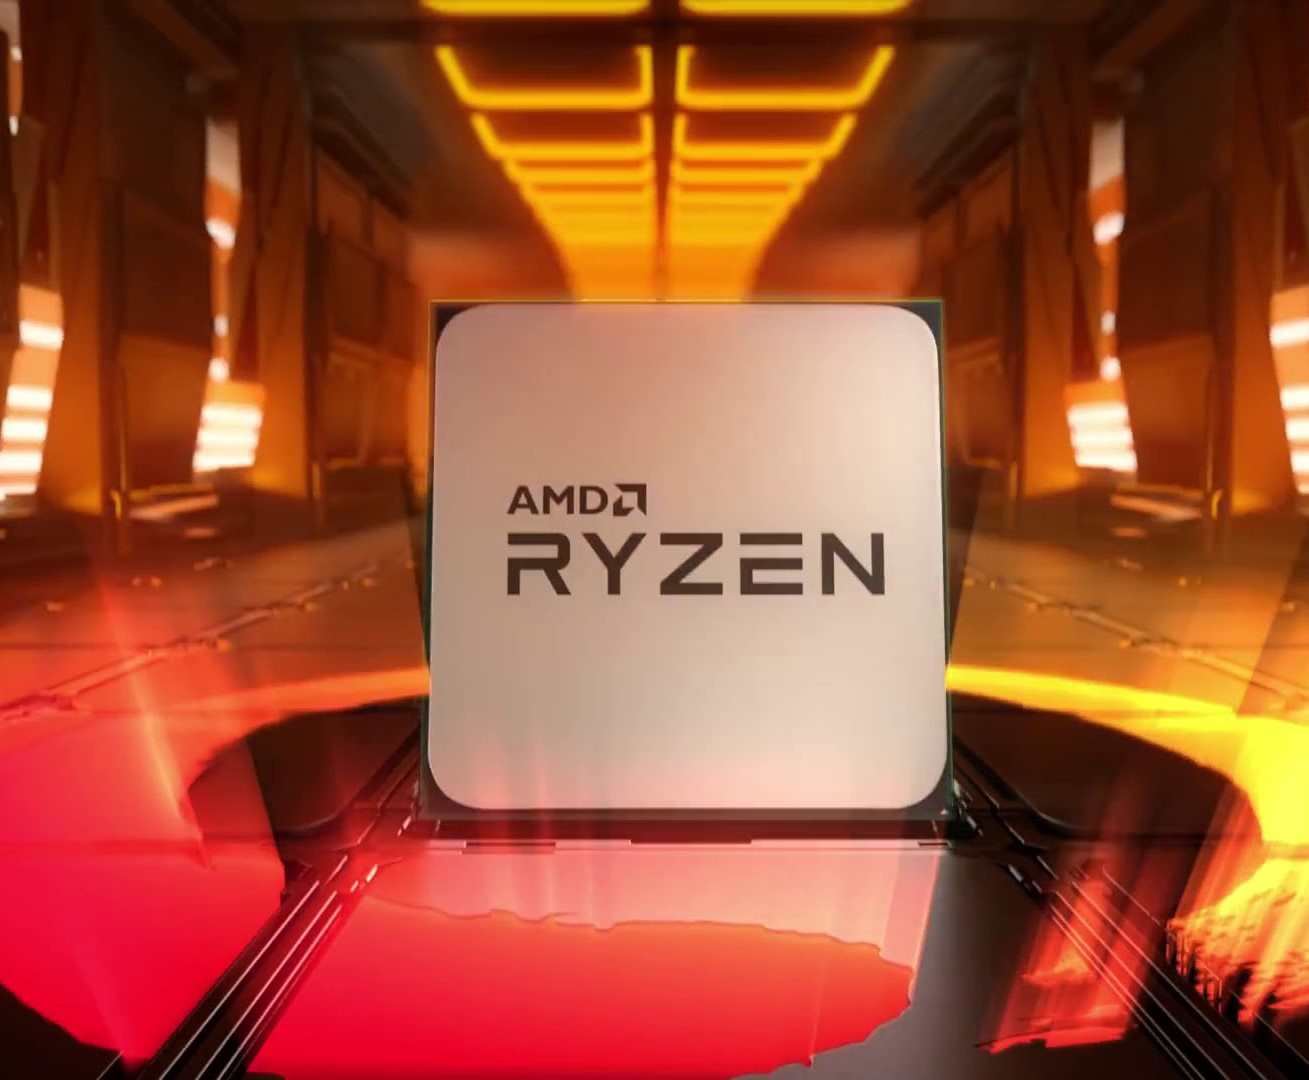 Amd S Upcoming Zen 3 Ryzen 4000 Desktop Cpus May Actually Use Tsmc S 5 Nm Enhanced Production Process Still Scheduled To Launch In Q4 2020 Notebookcheck Net News